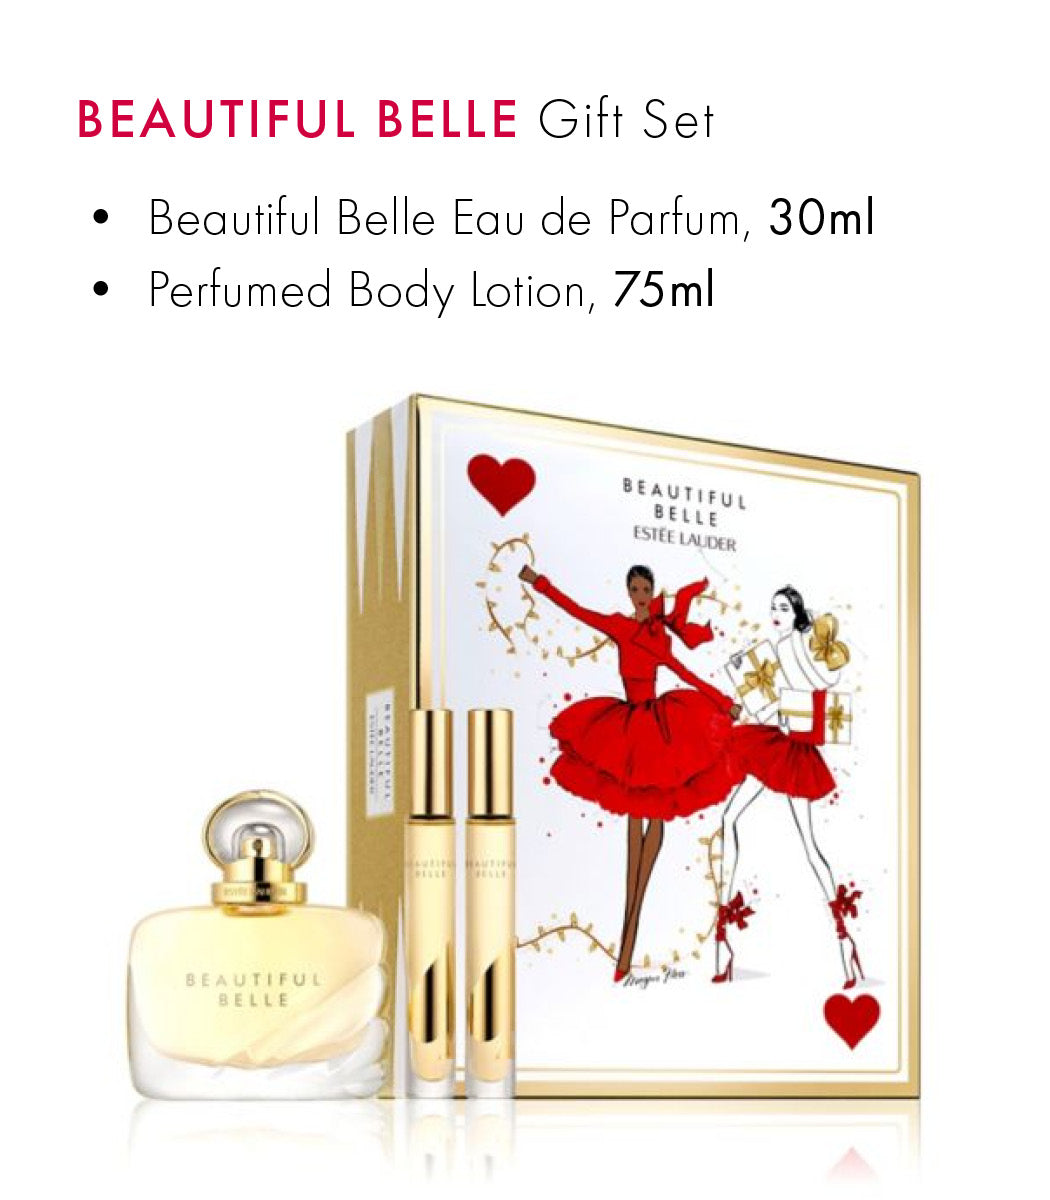 Beautiful Belle Coffret